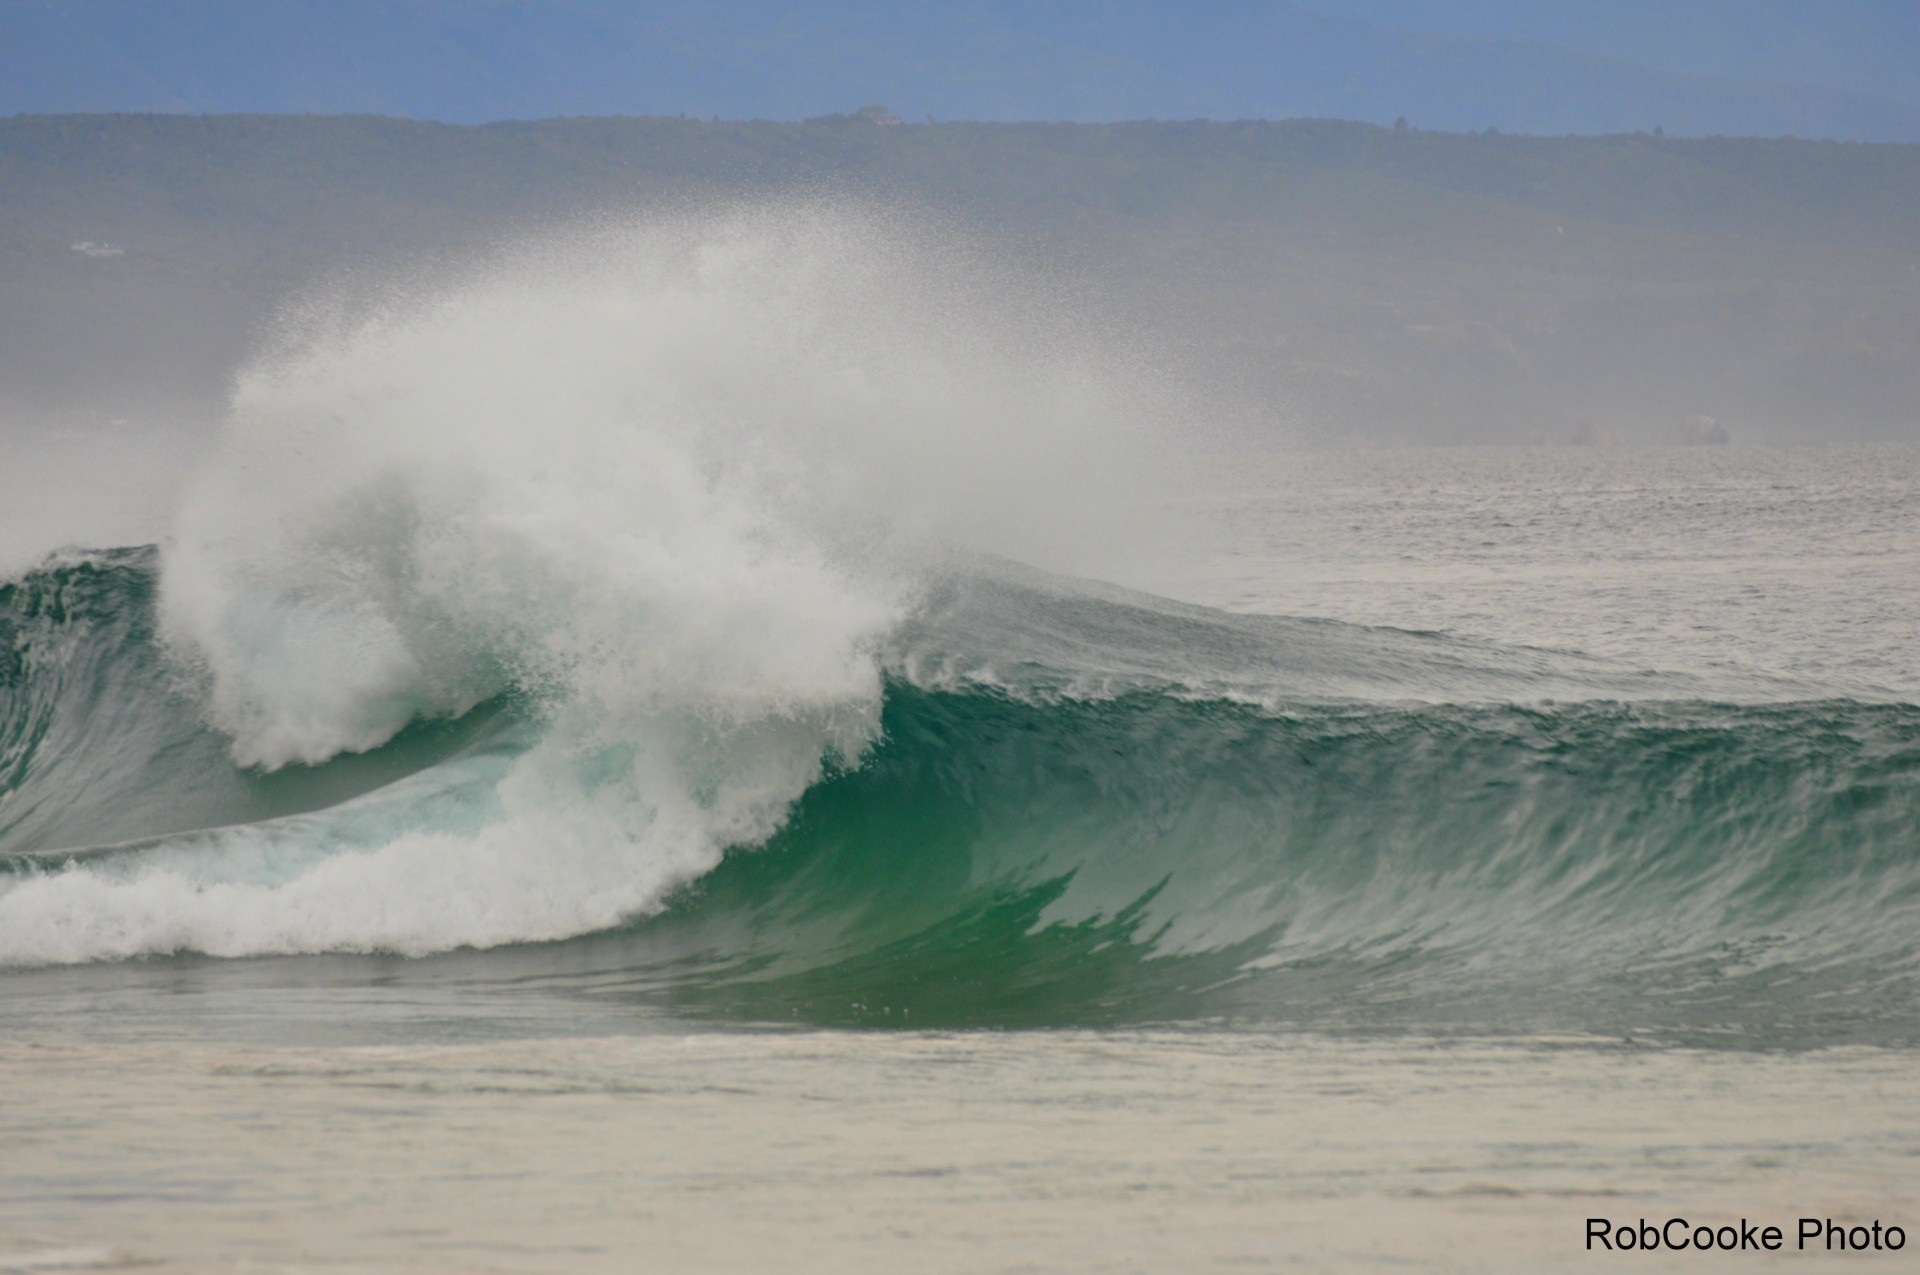 Robert Cooke's photo of The Wedge